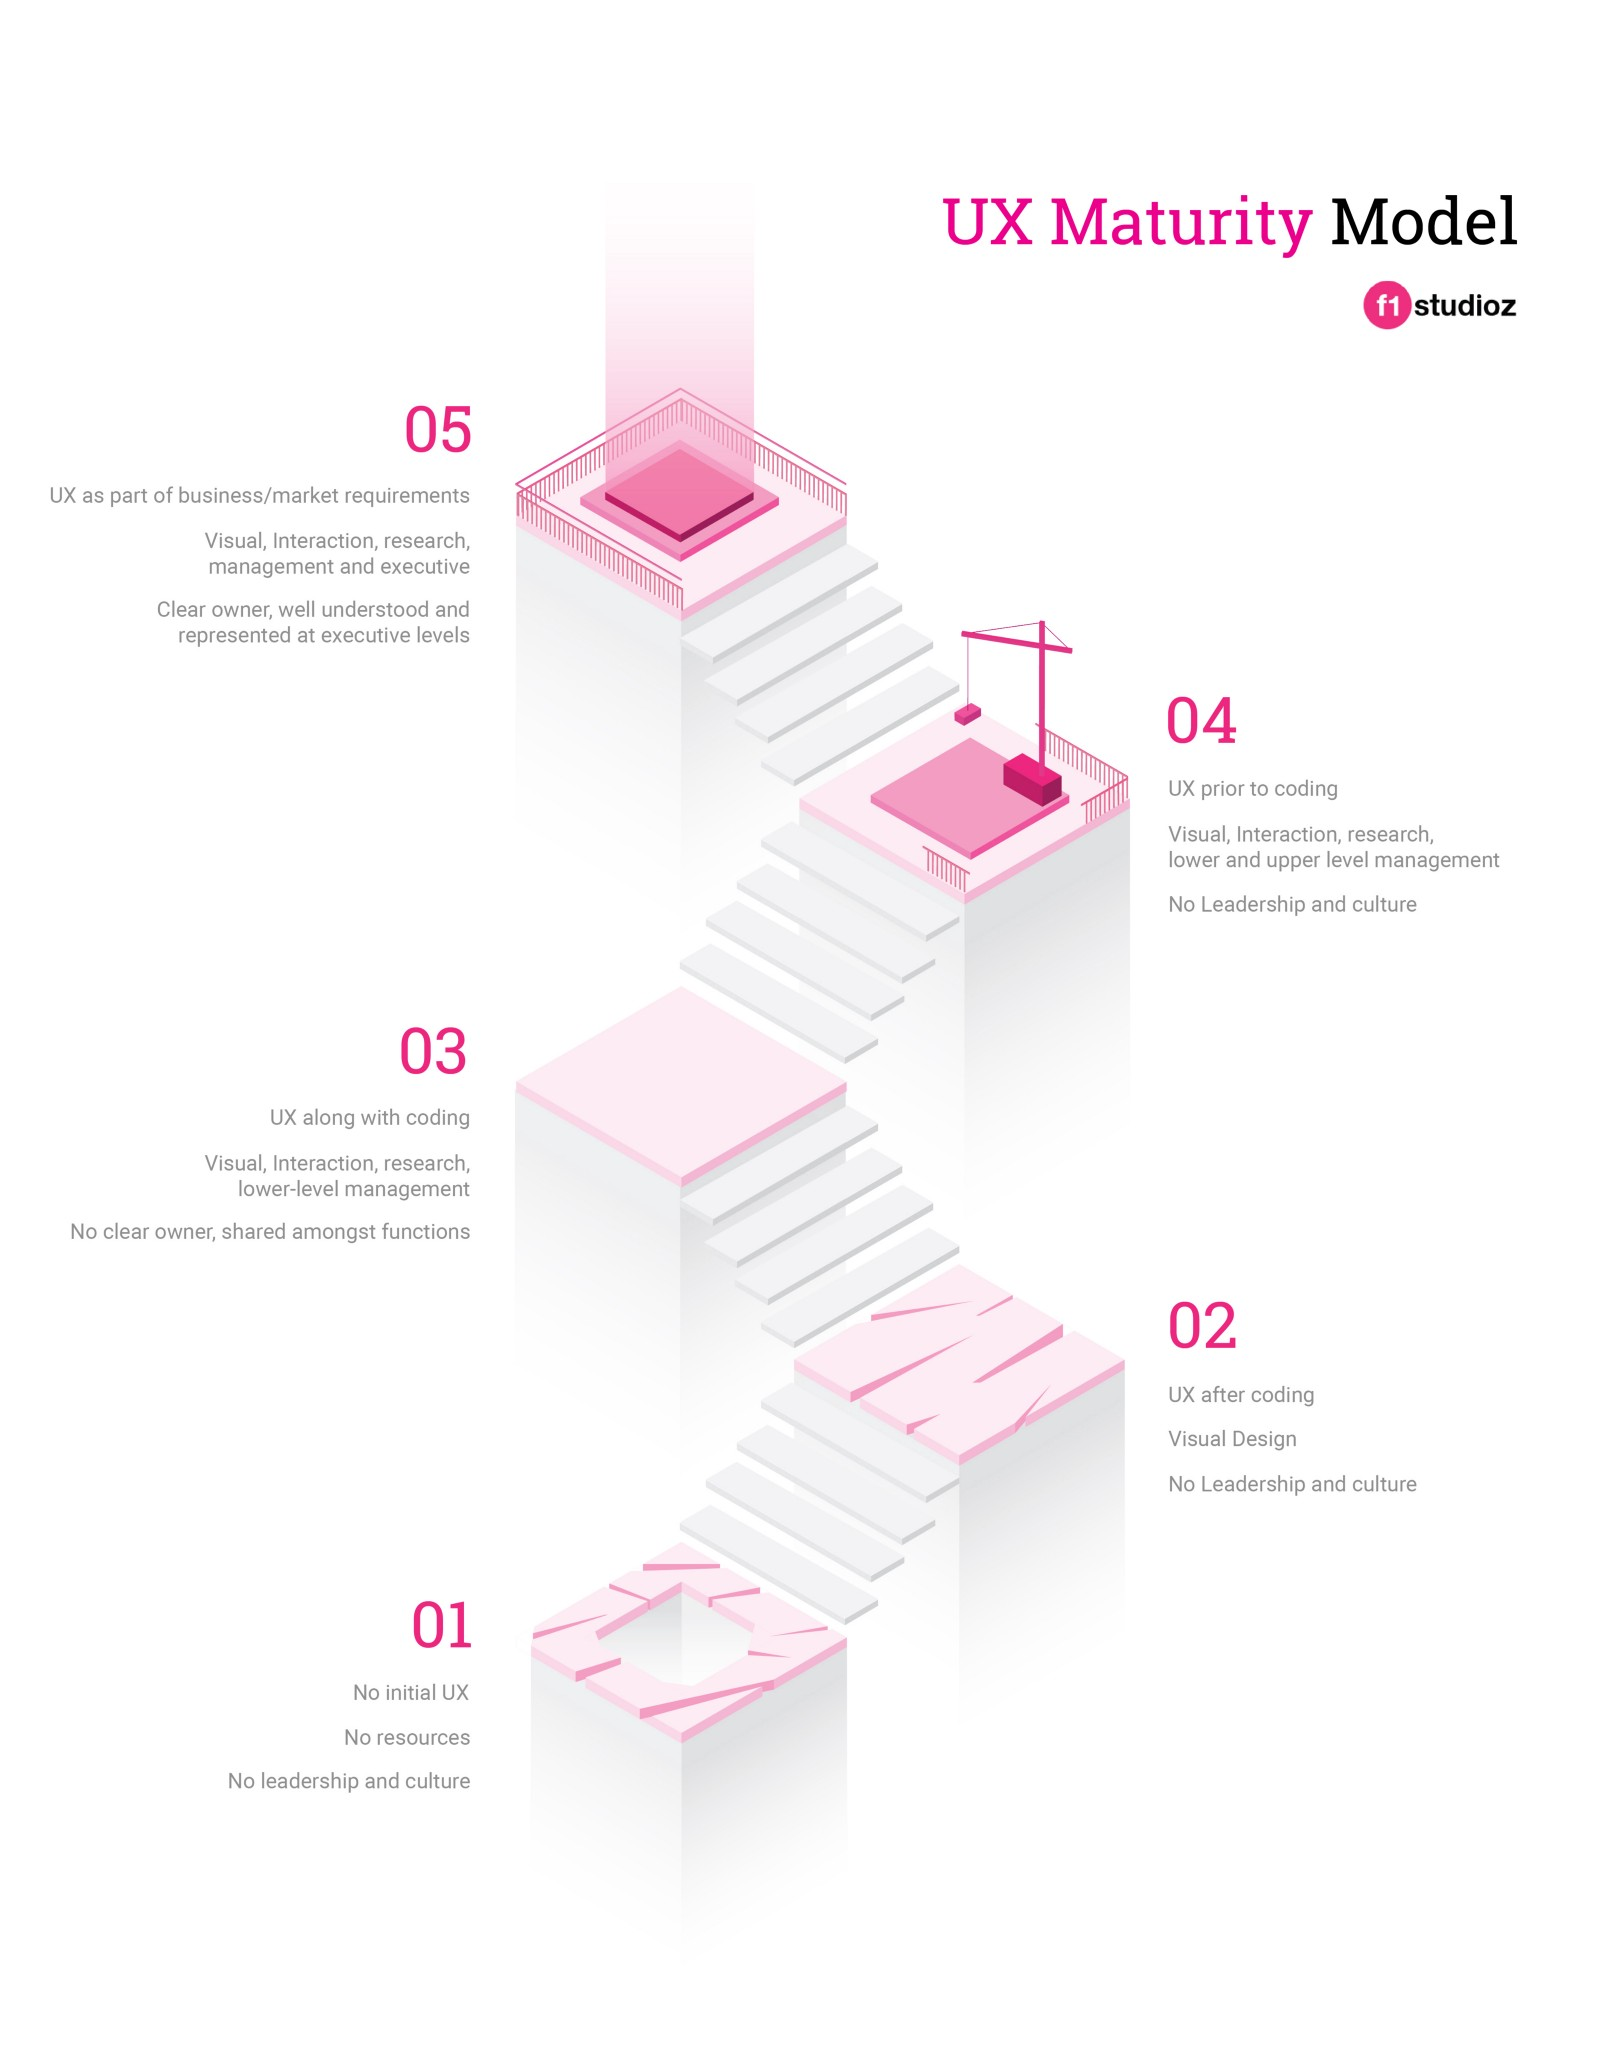 UX Maturity model — Expectations, Resources & Value